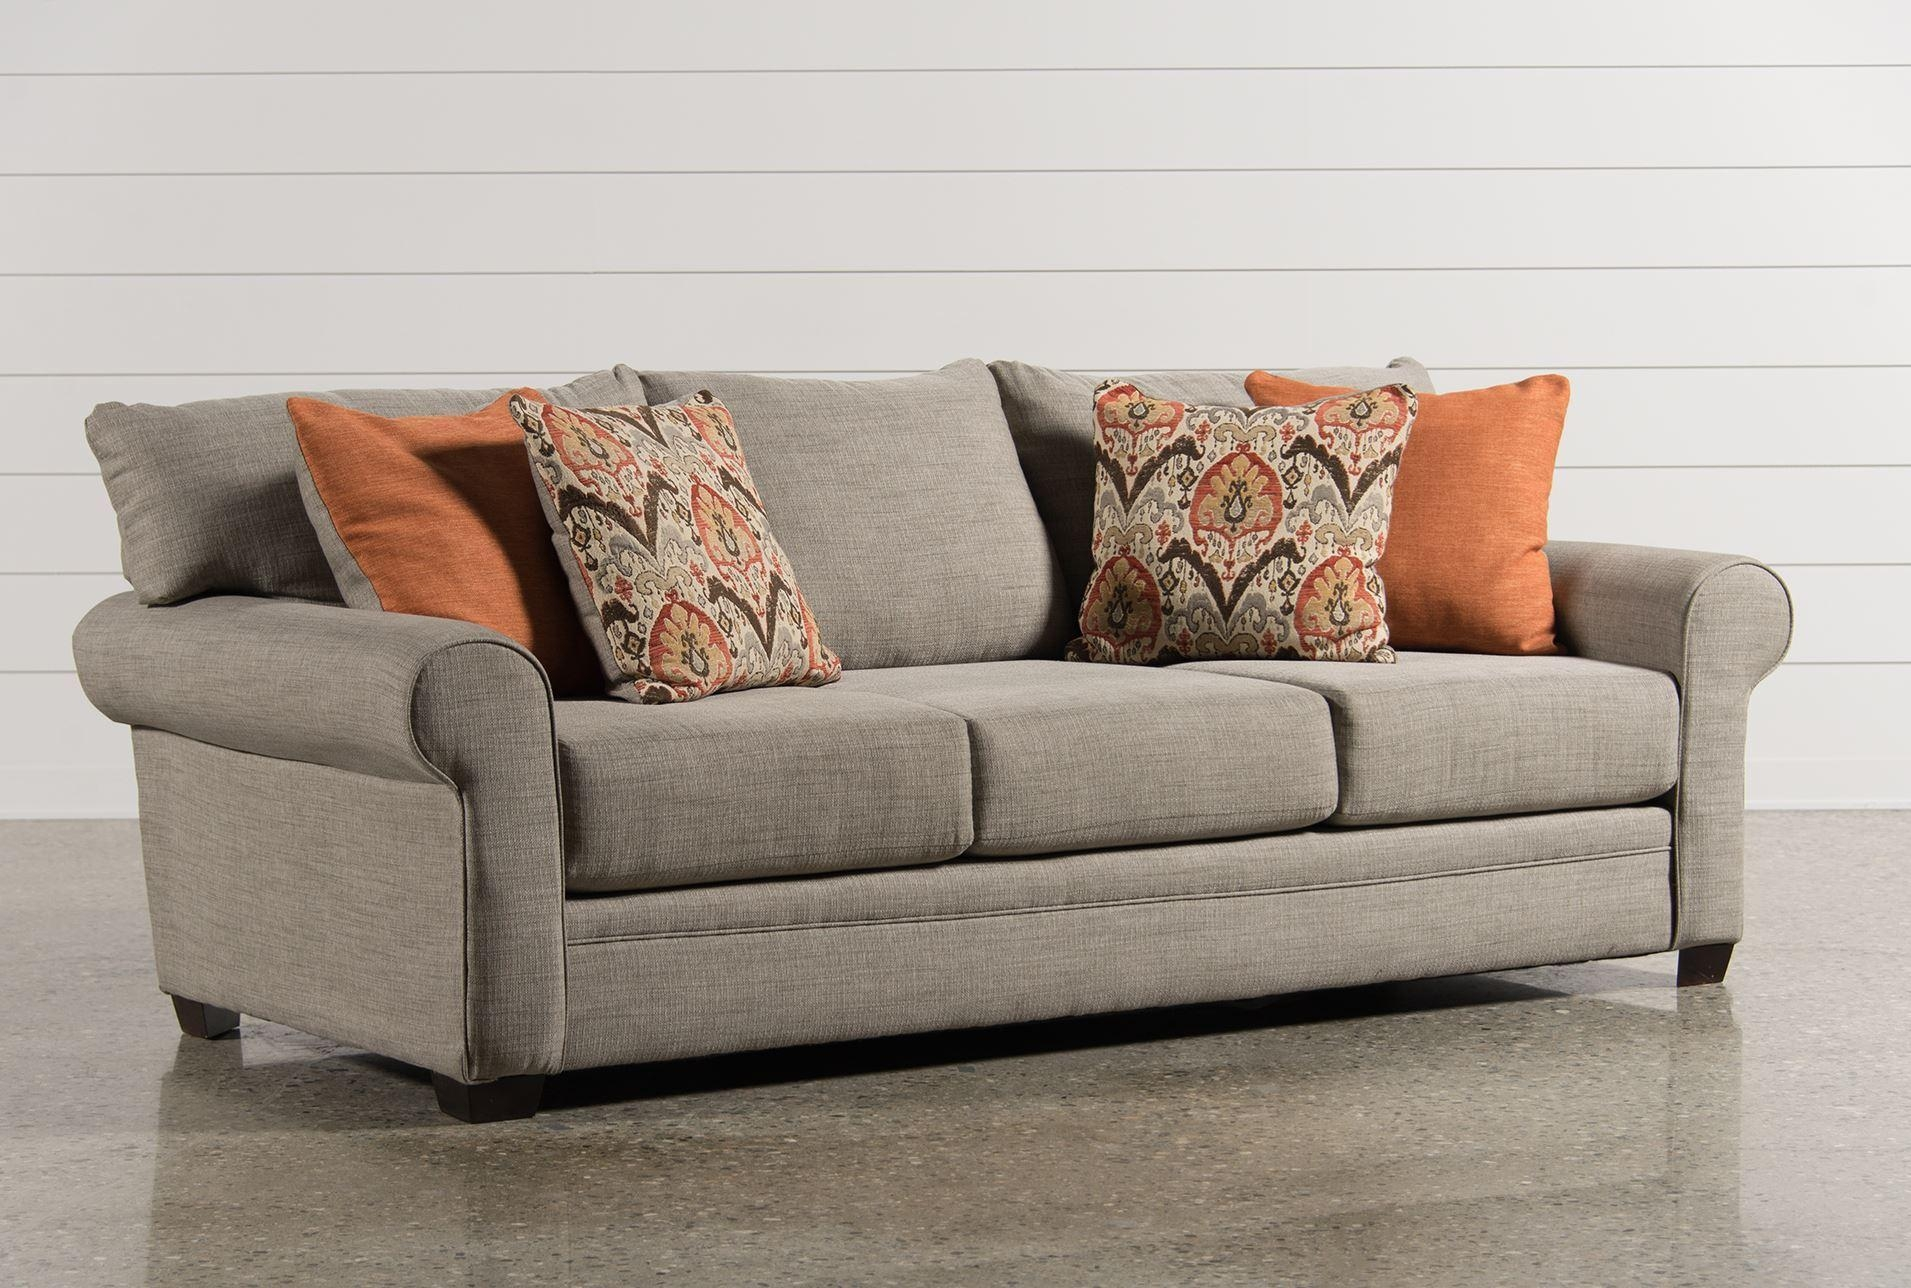 Elegant Sleeper Sofa Living Spaces 13 For Pier One Sleeper Sofa In Pier One Sleeper Sofas (View 13 of 20)